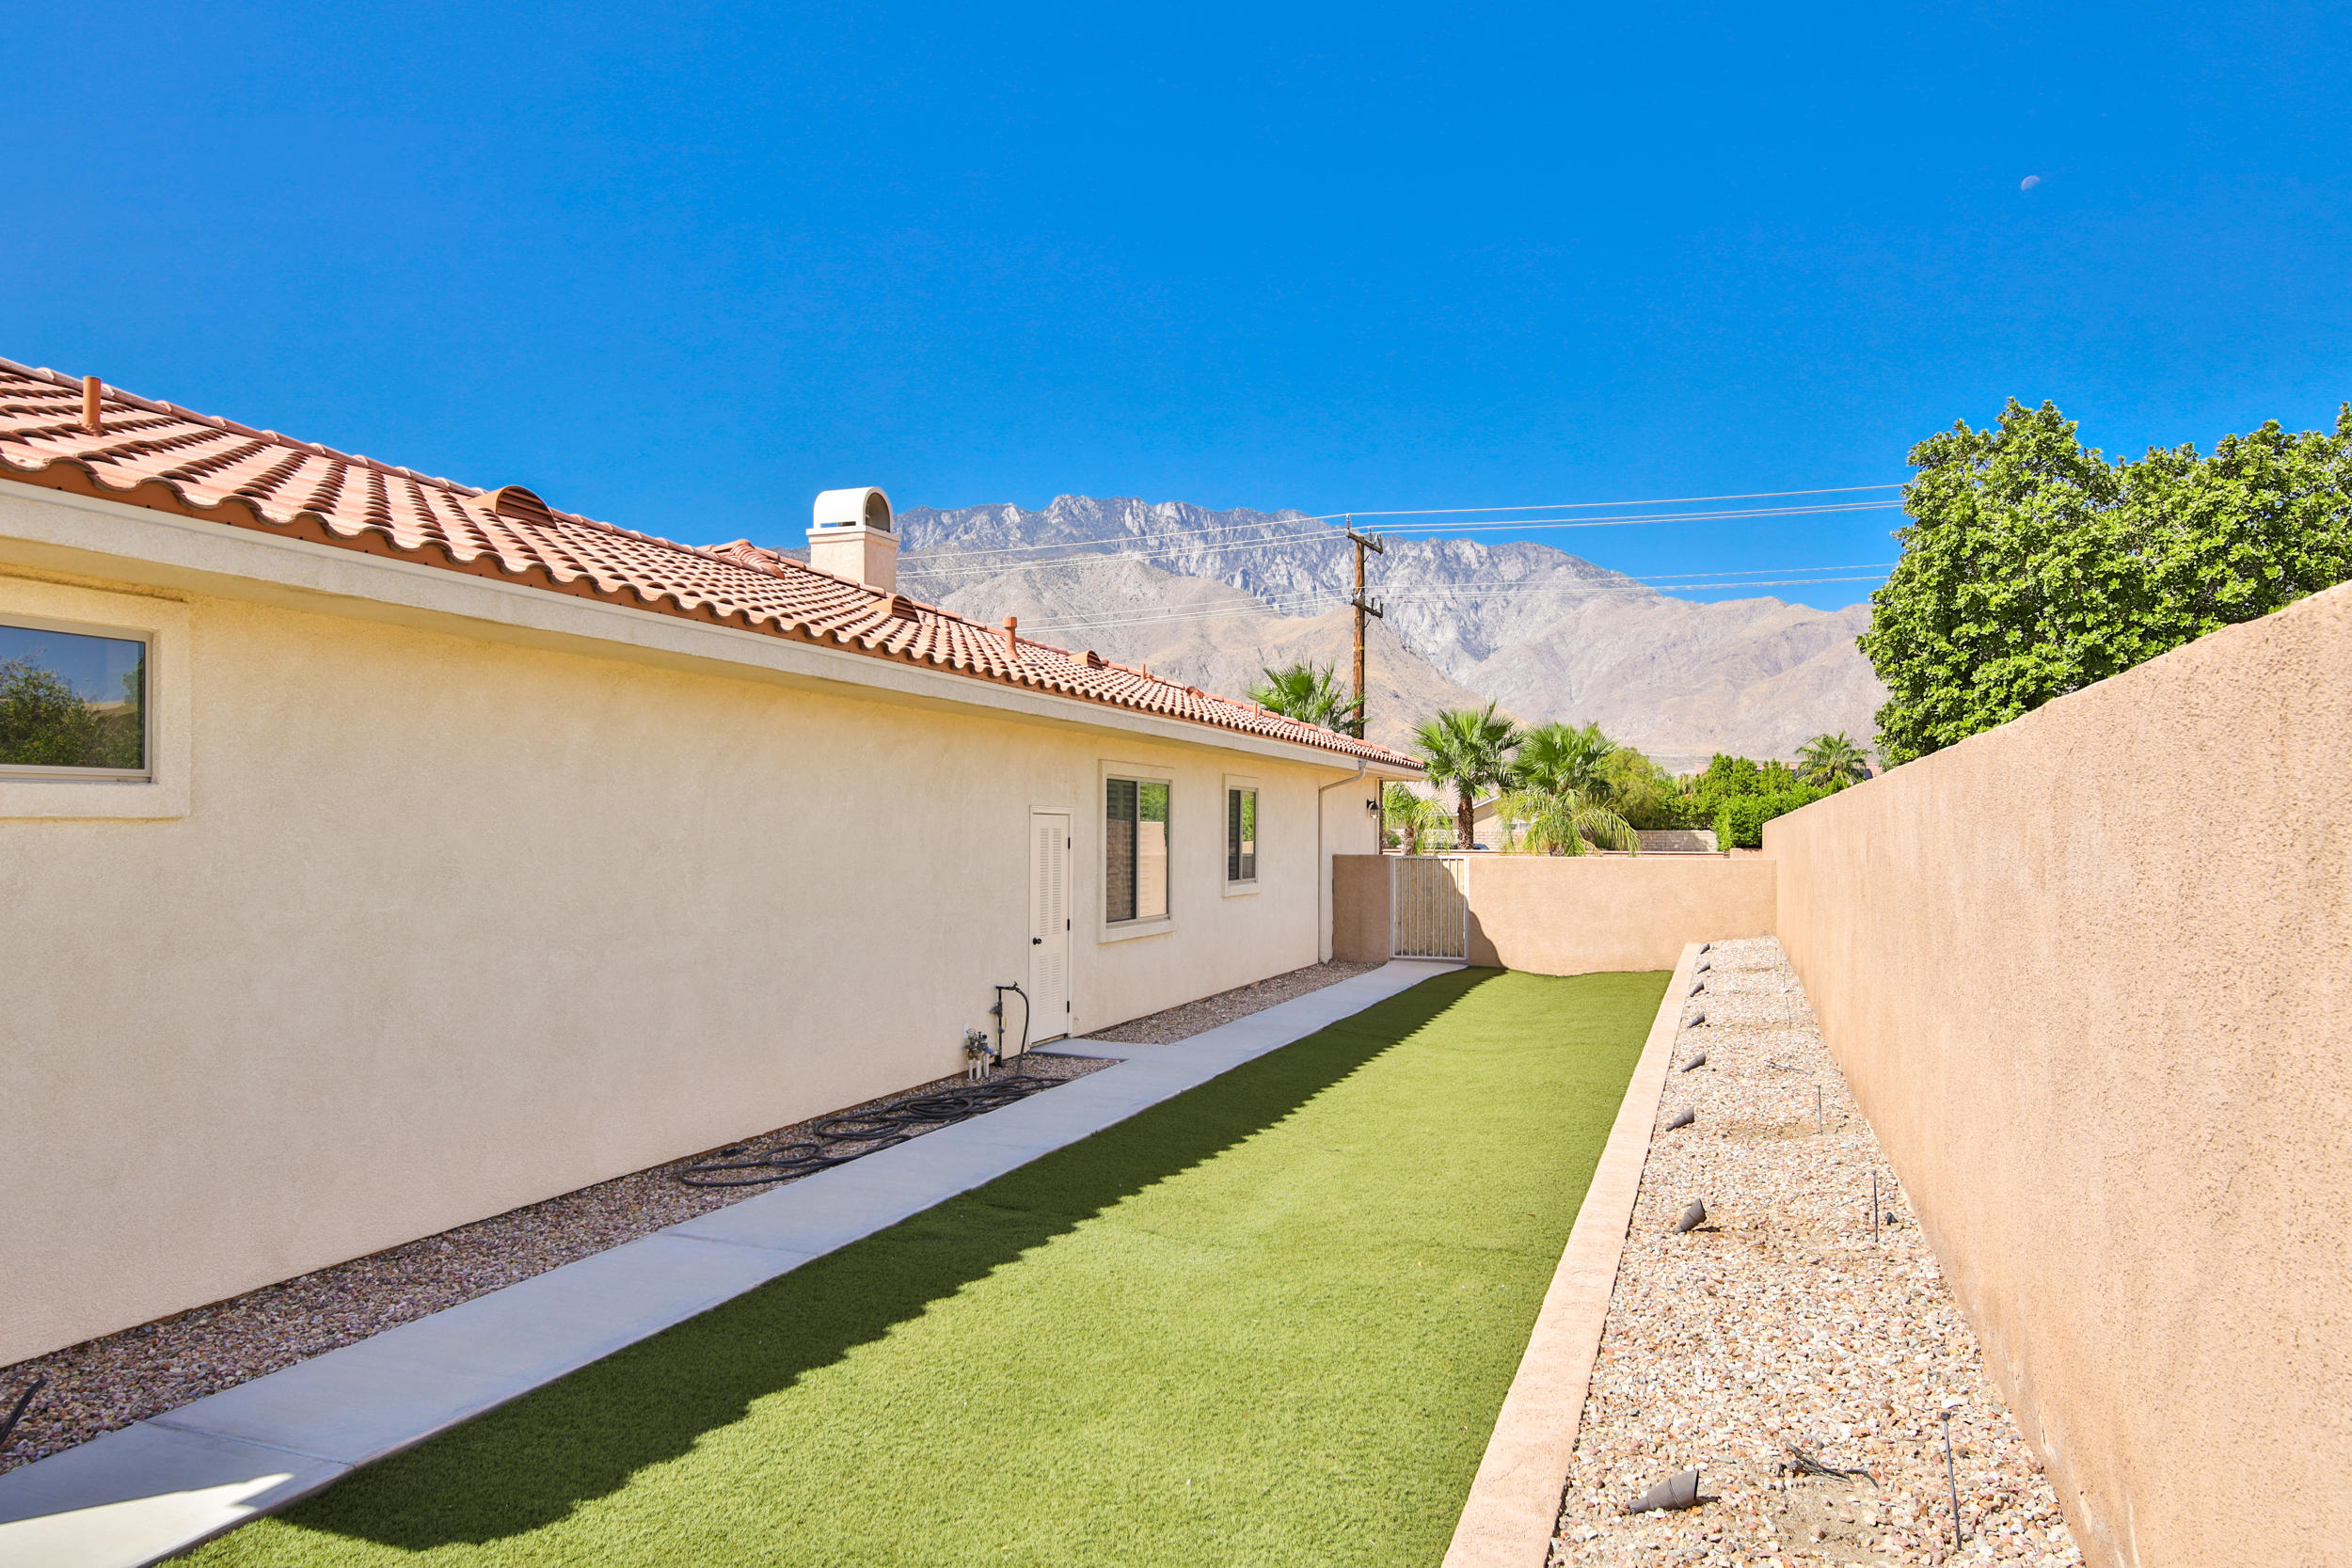 2280 N Sunrise Way, Palm Springs, California 92262, 4 Bedrooms Bedrooms, ,4 BathroomsBathrooms,Residential,For Sale,2280 N Sunrise Way,219038686